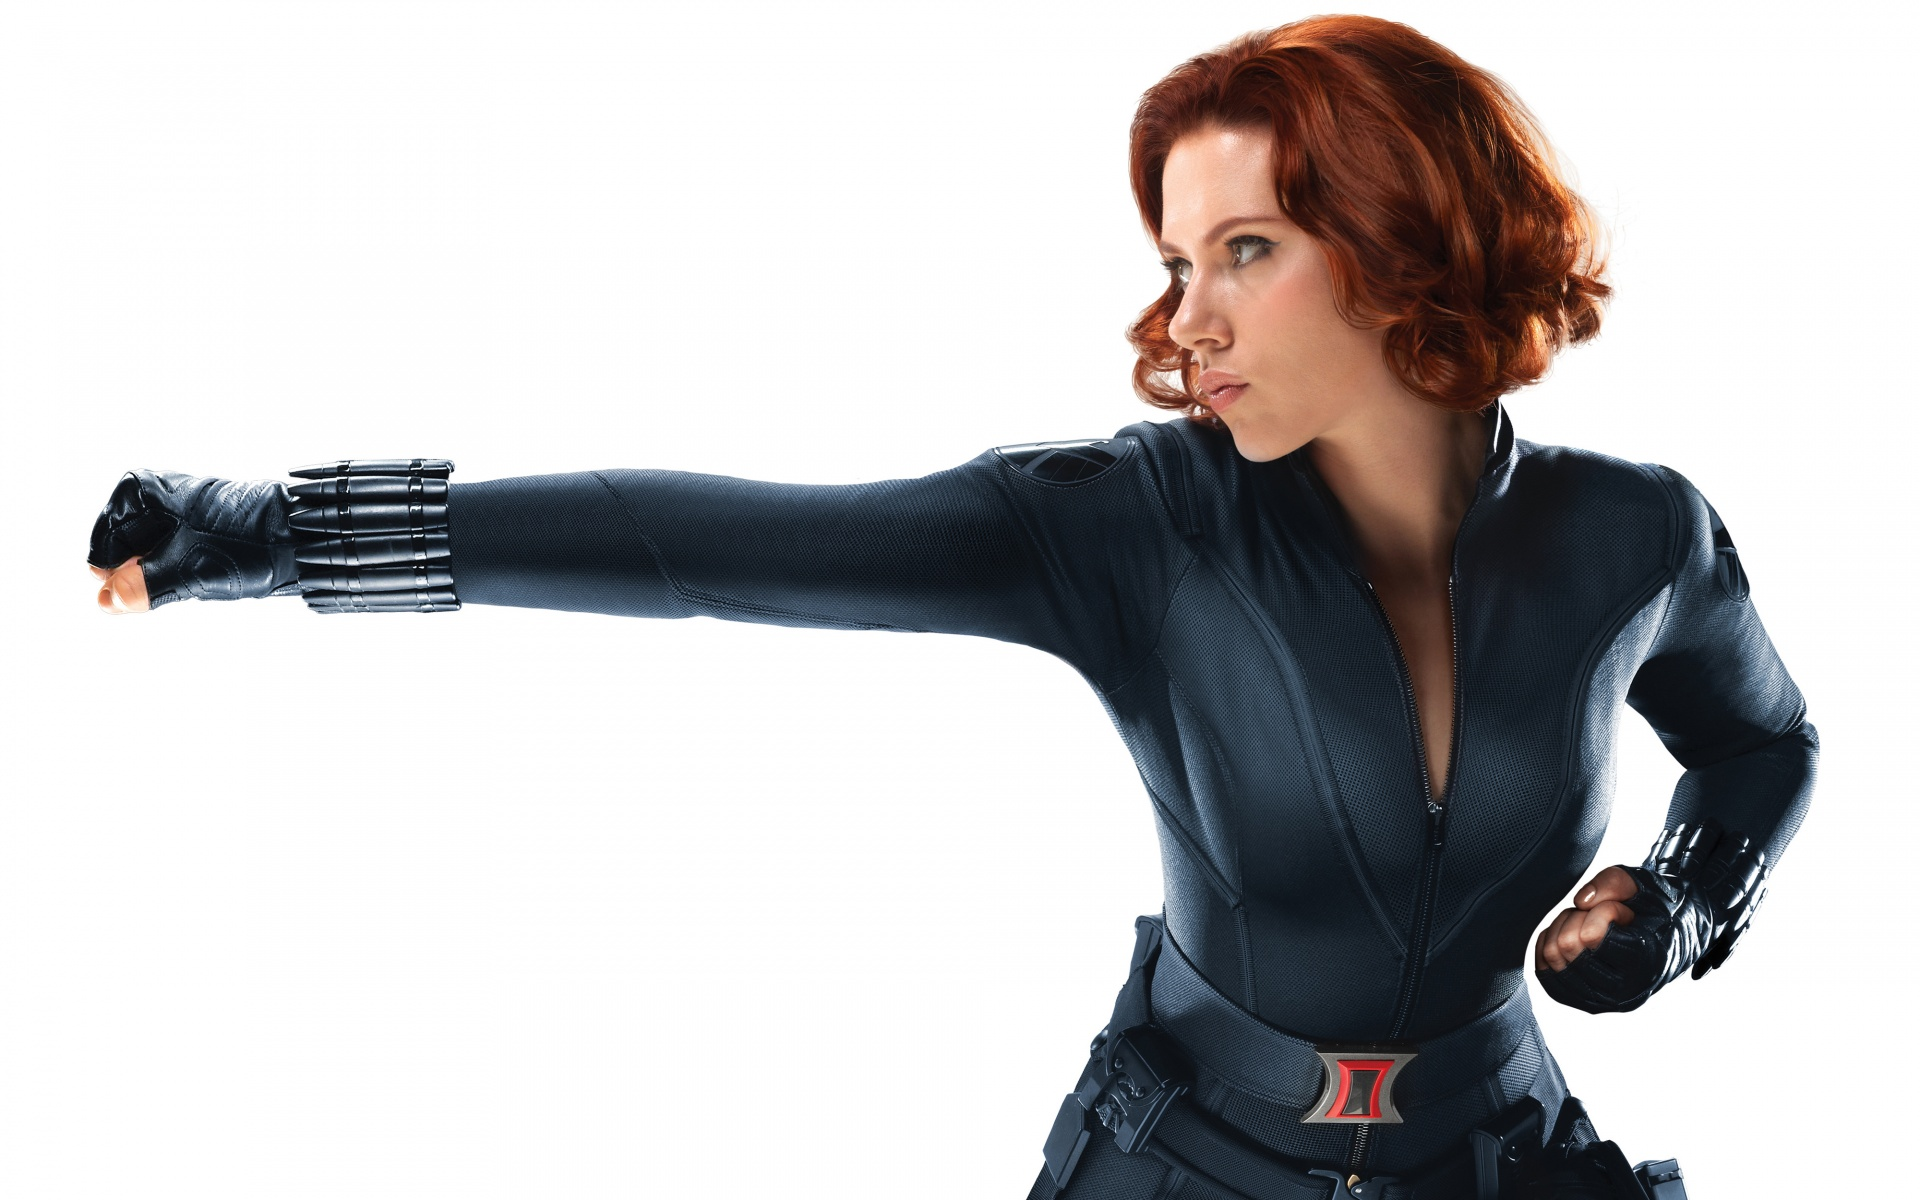 Scarlett johansson black widow wallpaper - photo#10